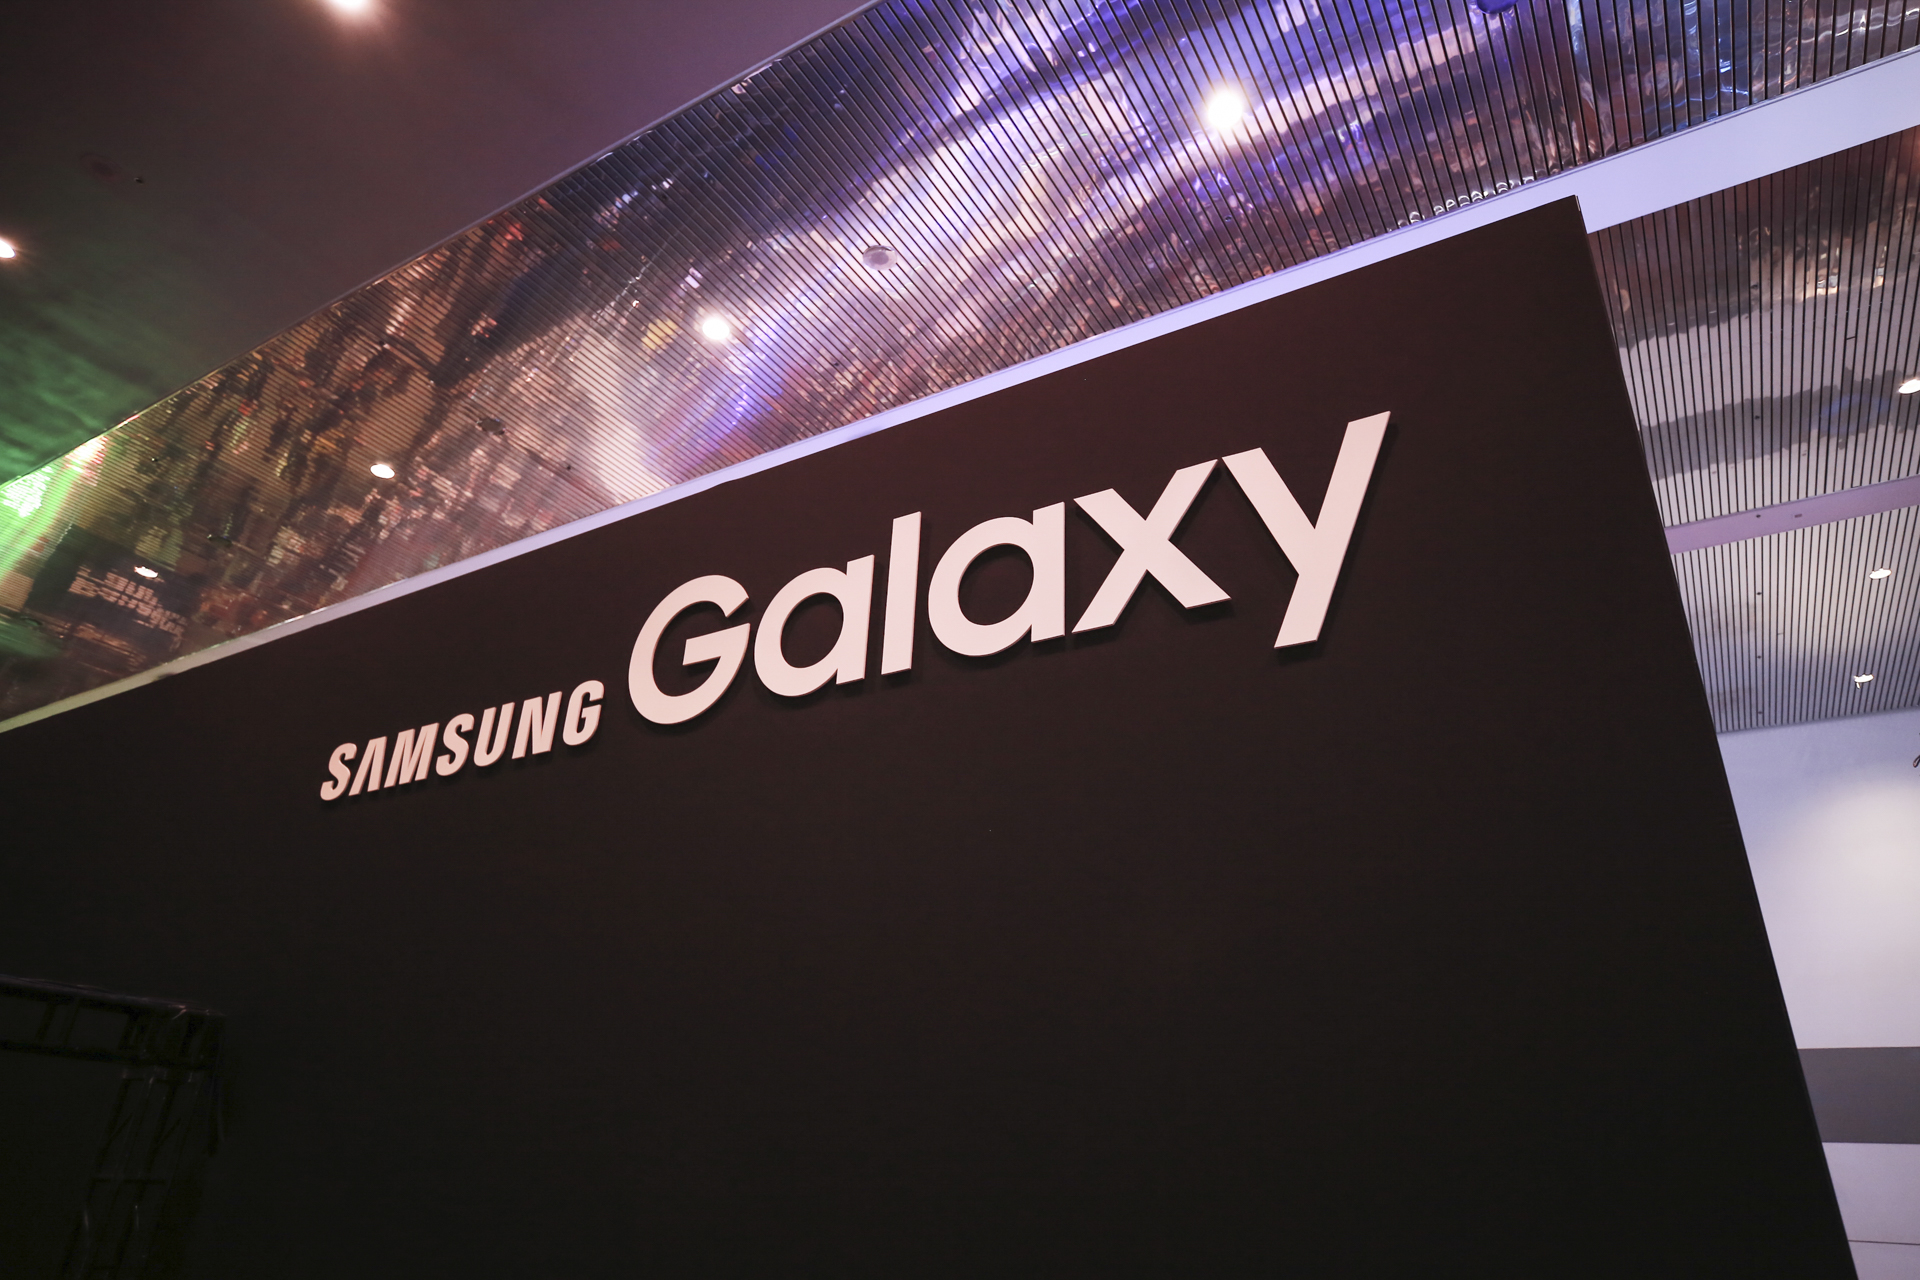 Samsung Galaxy S9 and Galaxy S9+ to be showcased at CES 2018